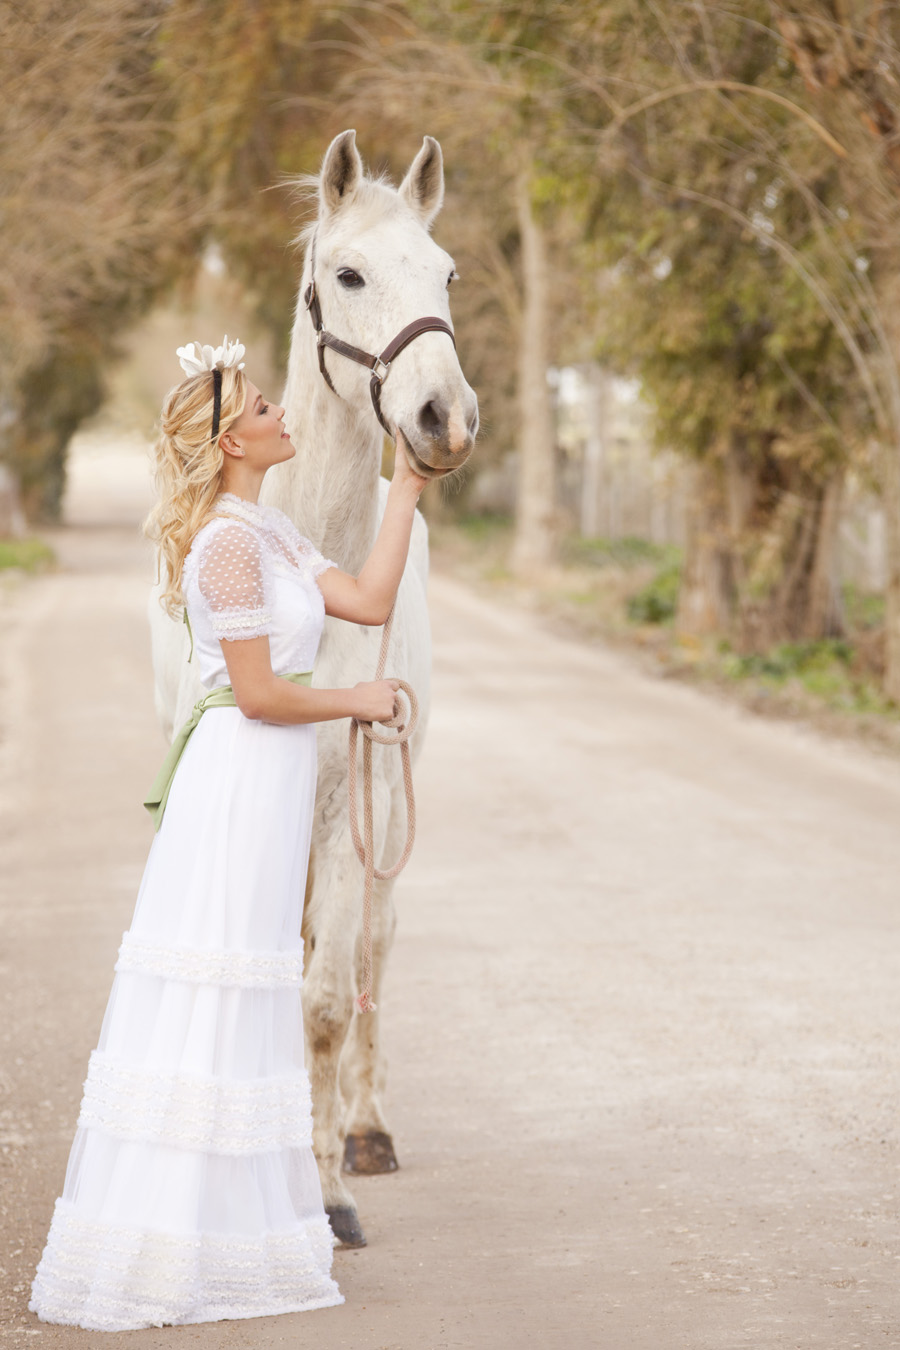 Matrimonio Country Chic Roma : Matrimonio in stile shabby chic interiors